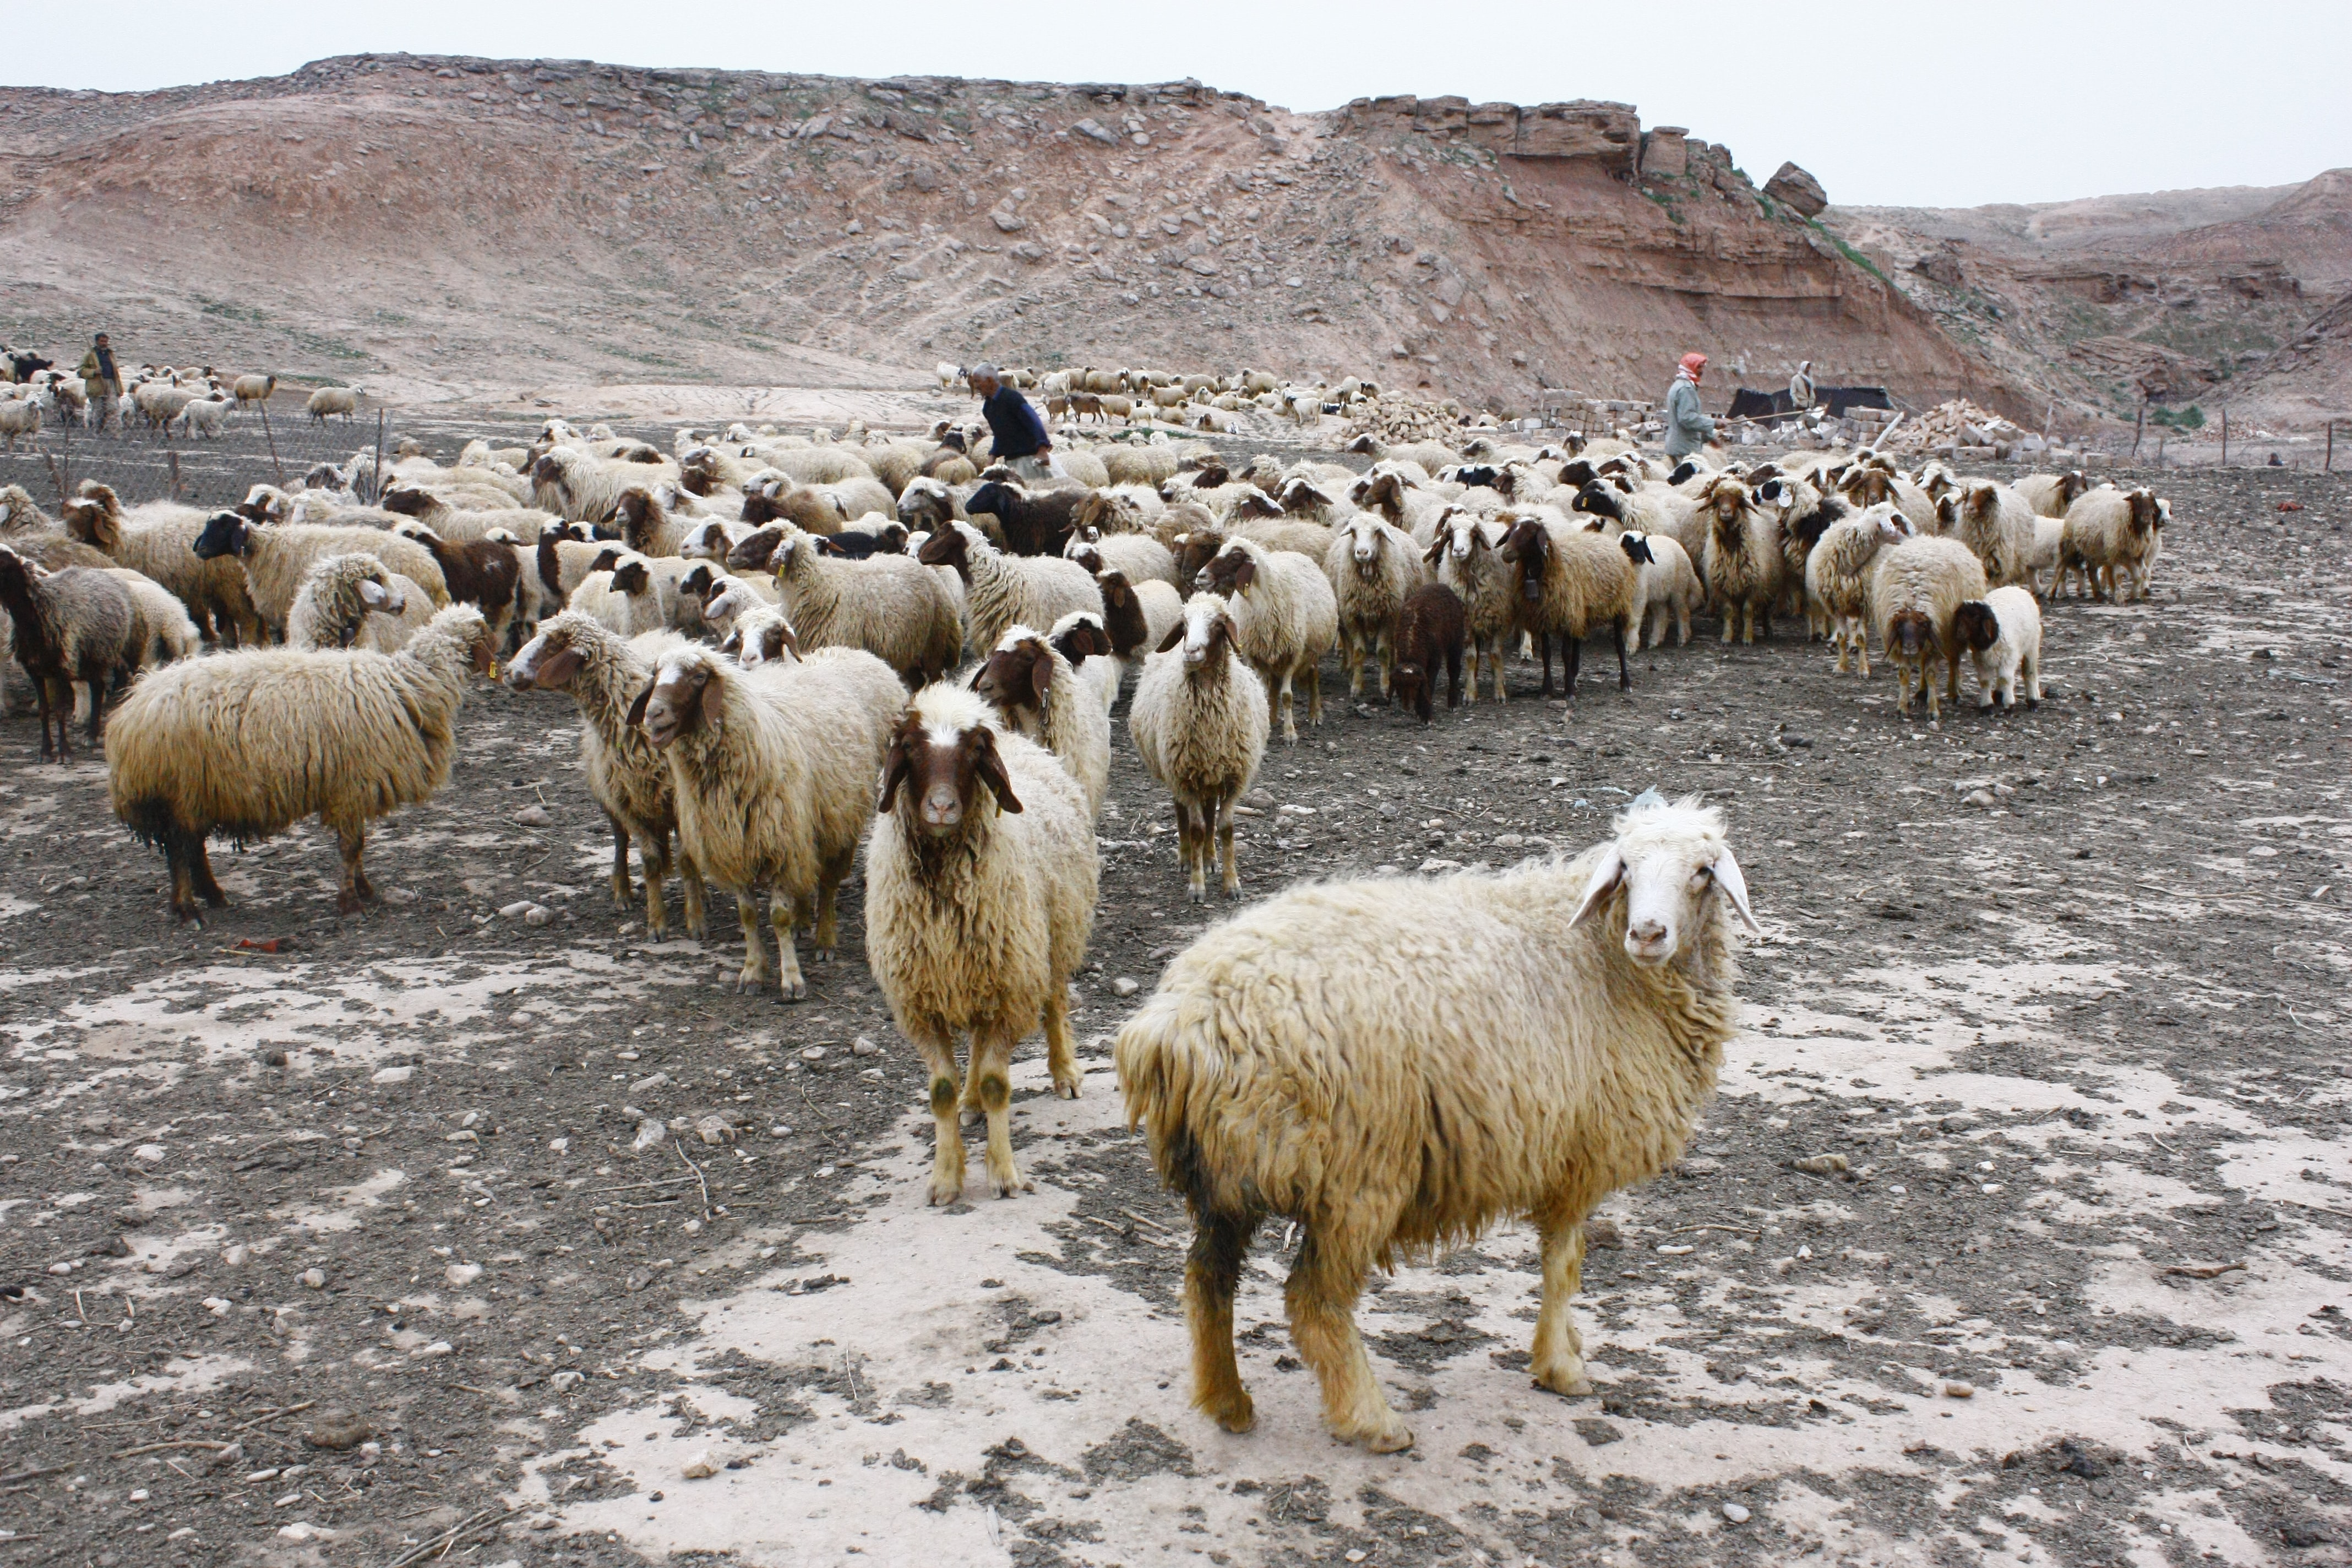 A herd of sheep with three shepherds in a sparse, rocky setting near red mountains